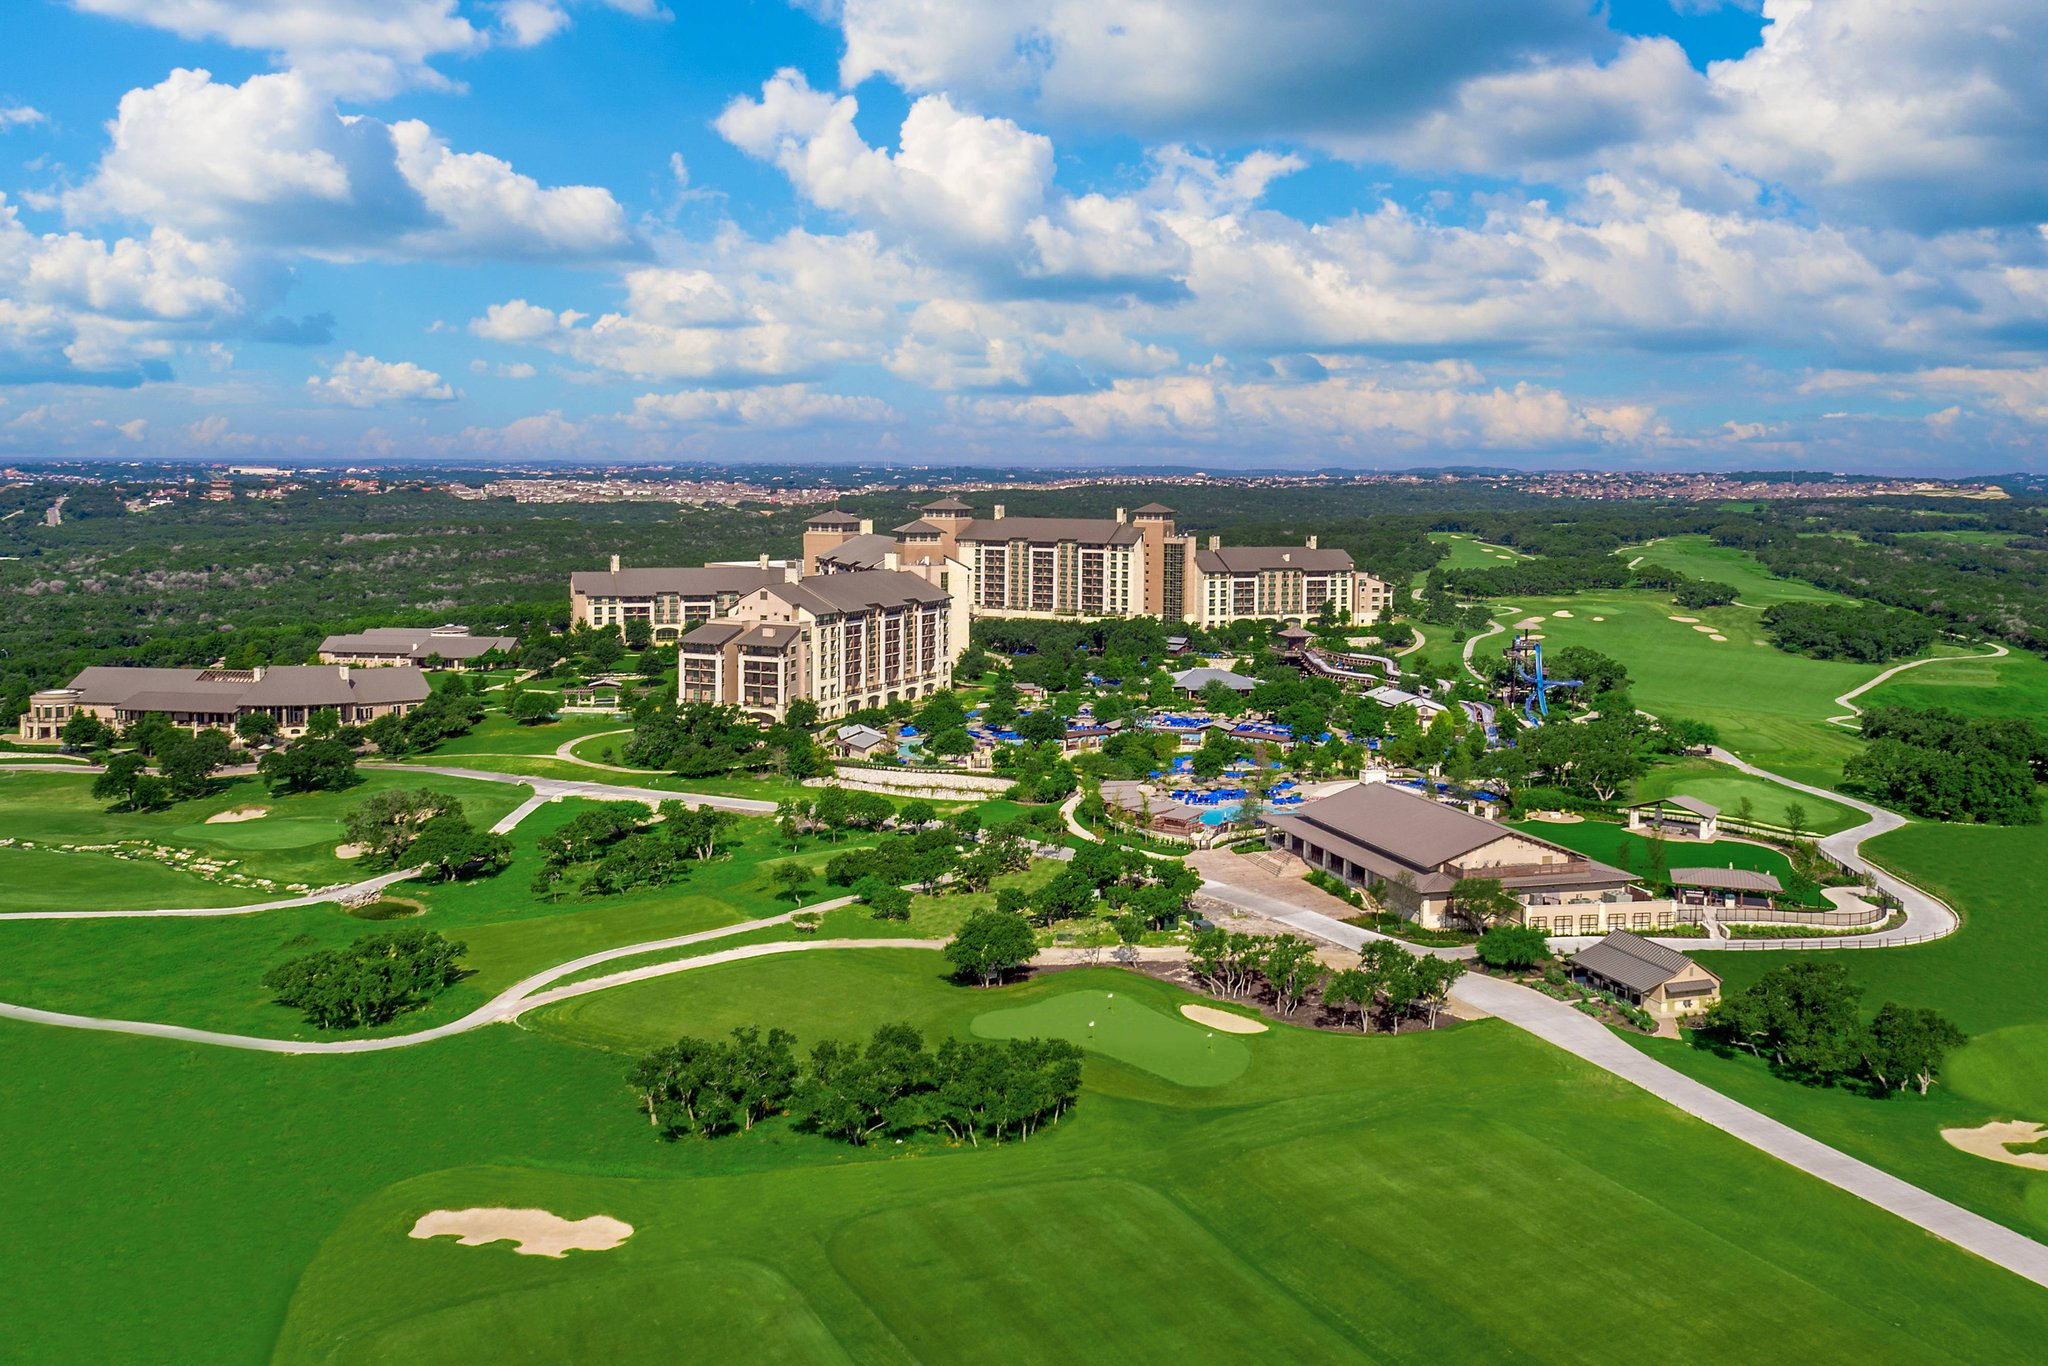 Meetings and events at JW Marriott San Antonio Hill Country